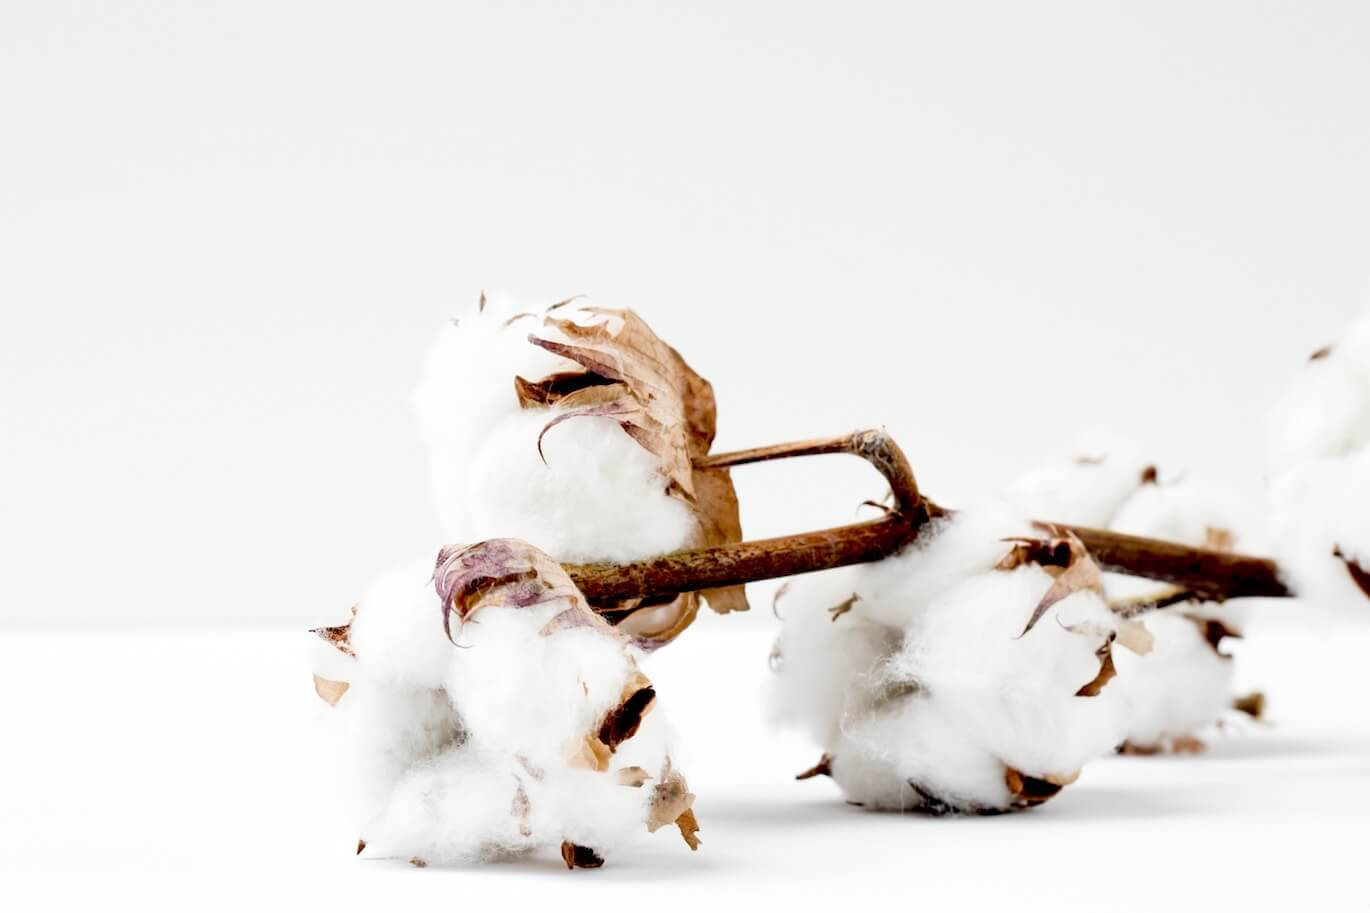 cotton plant in a white background